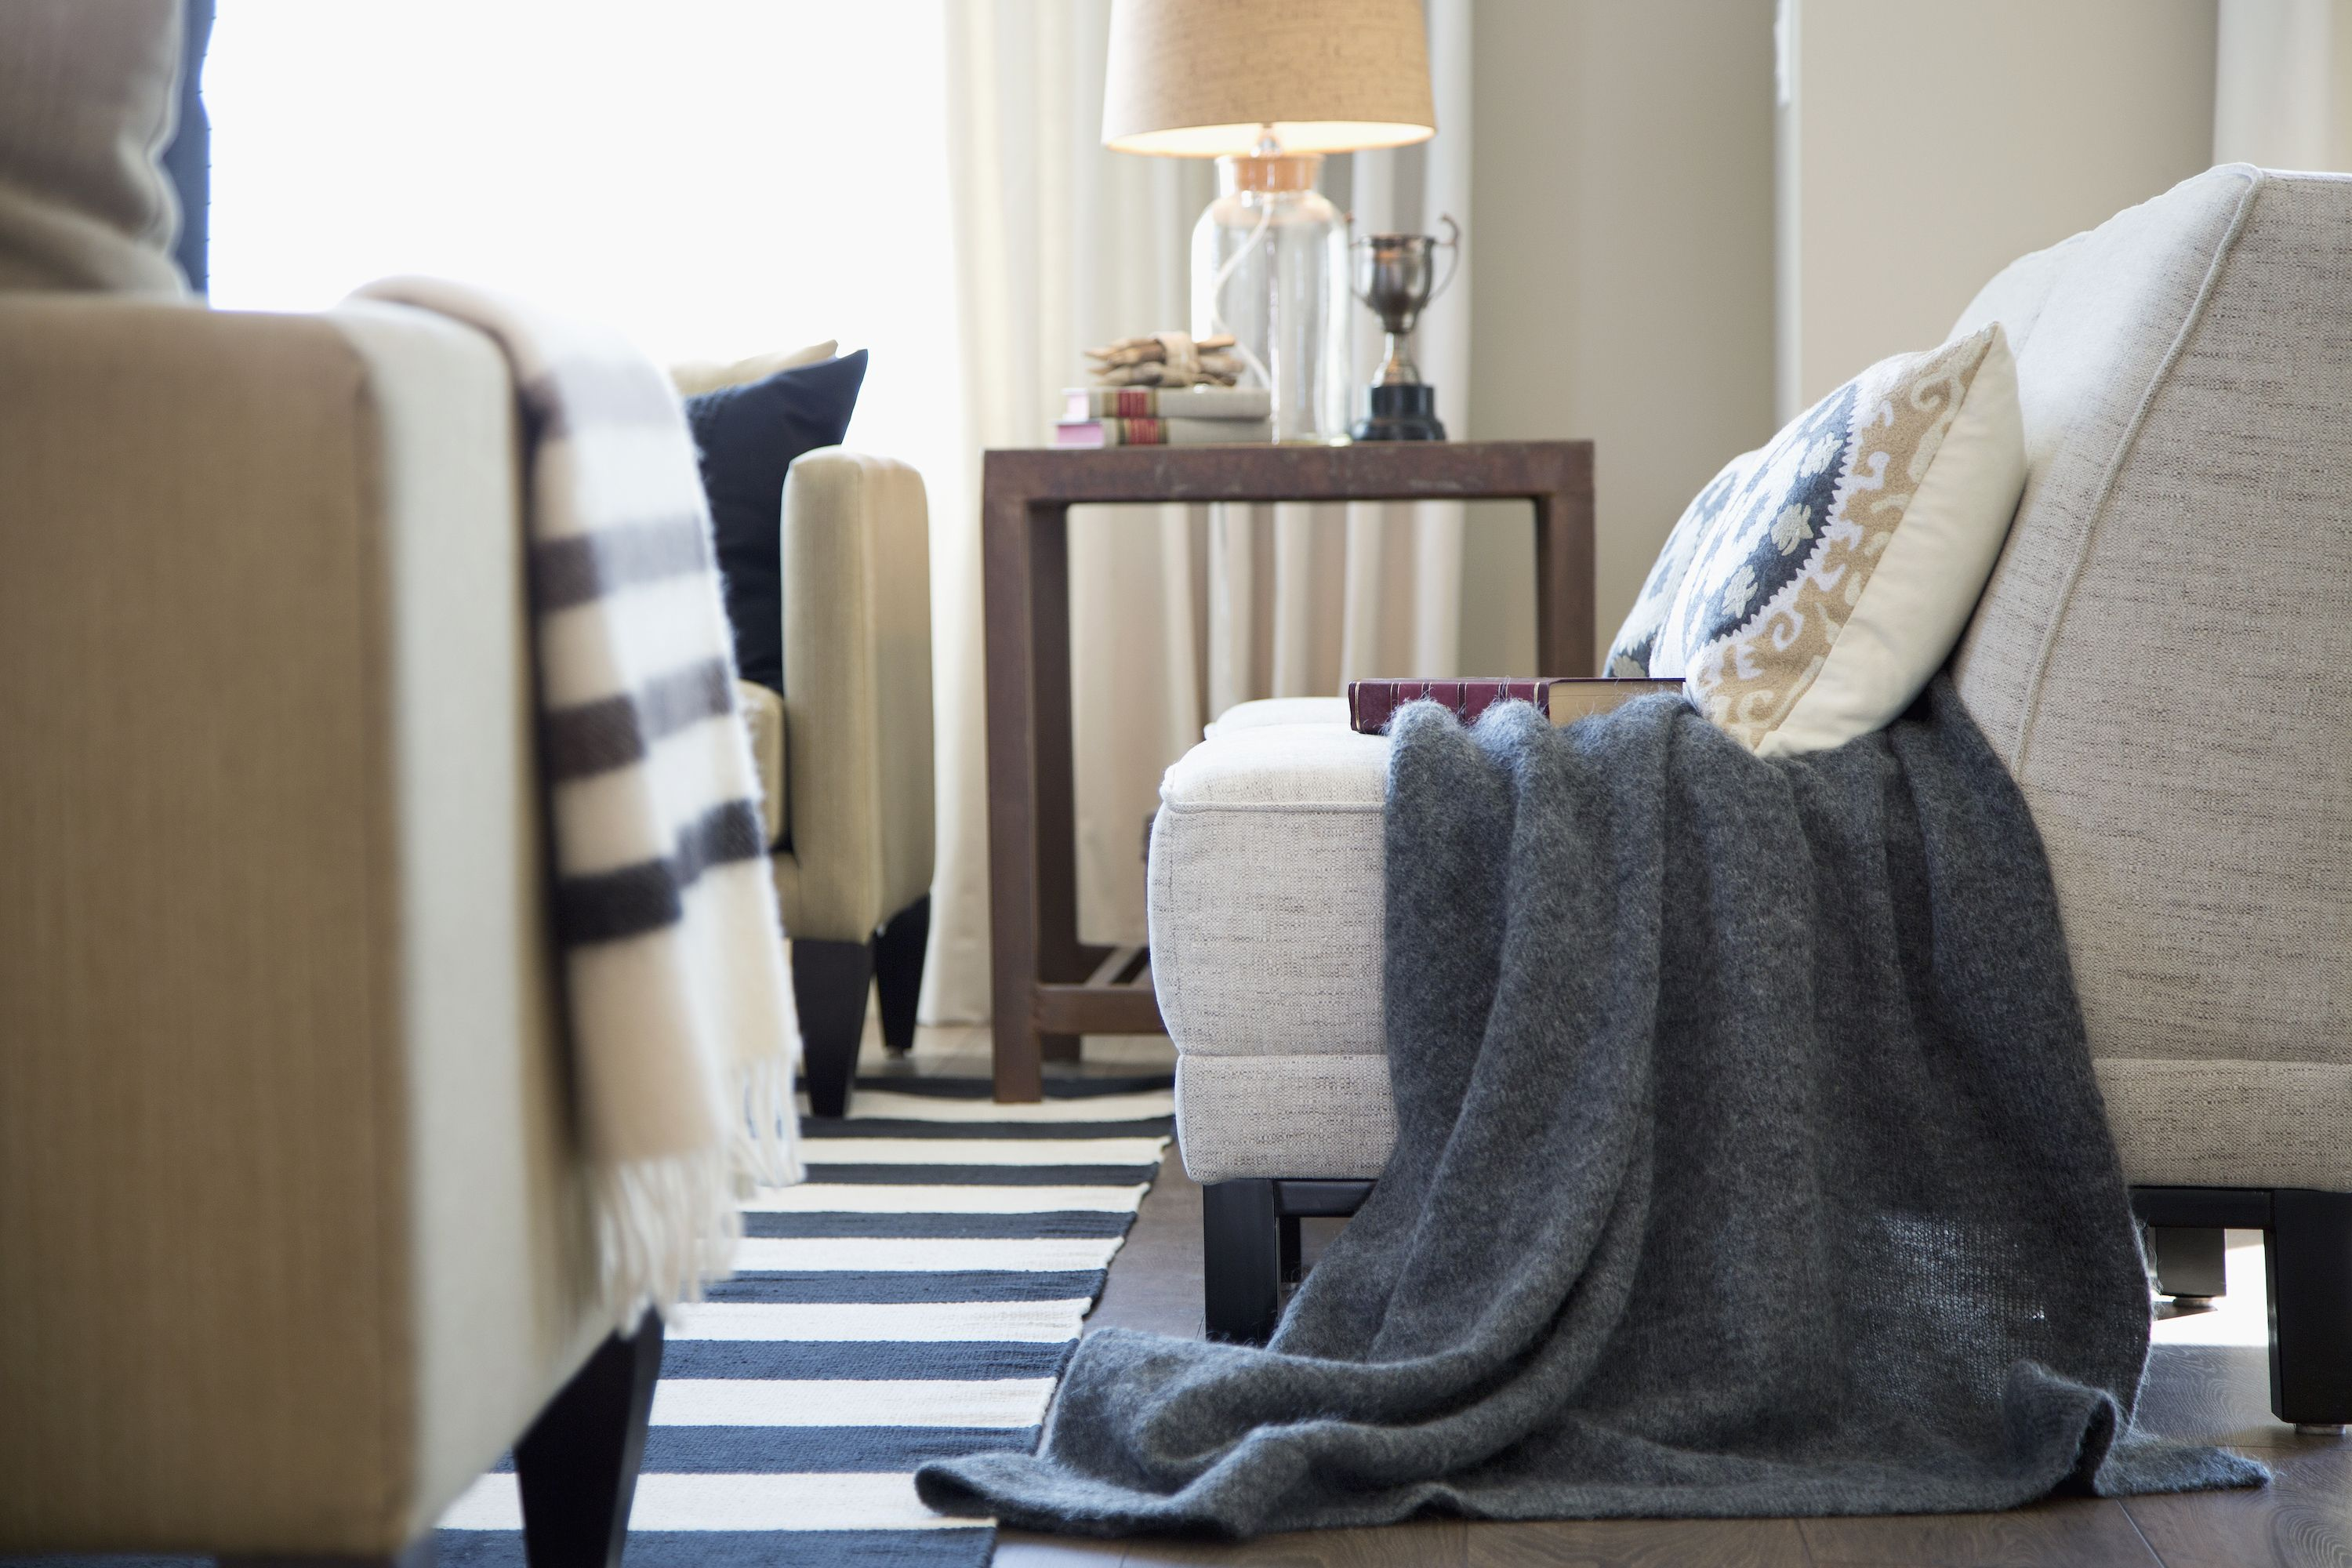 9 Best Throw Blankets 9 - Comfortable, Stylish Throw Blankets